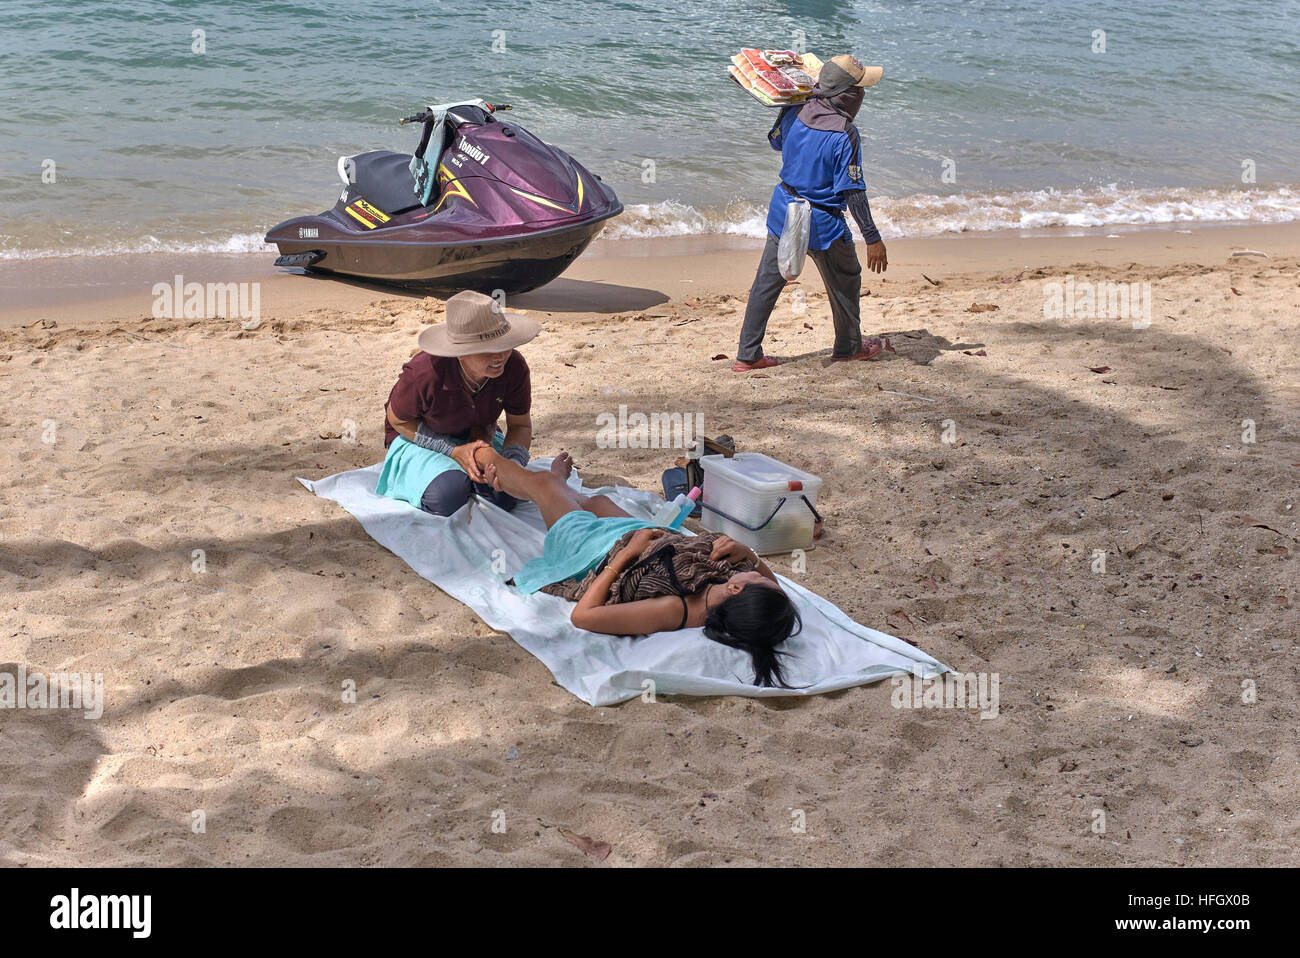 Female masseuse and female customer receiving a massage on the beach. Pattaya Thailand S. E. Asia - Stock Image